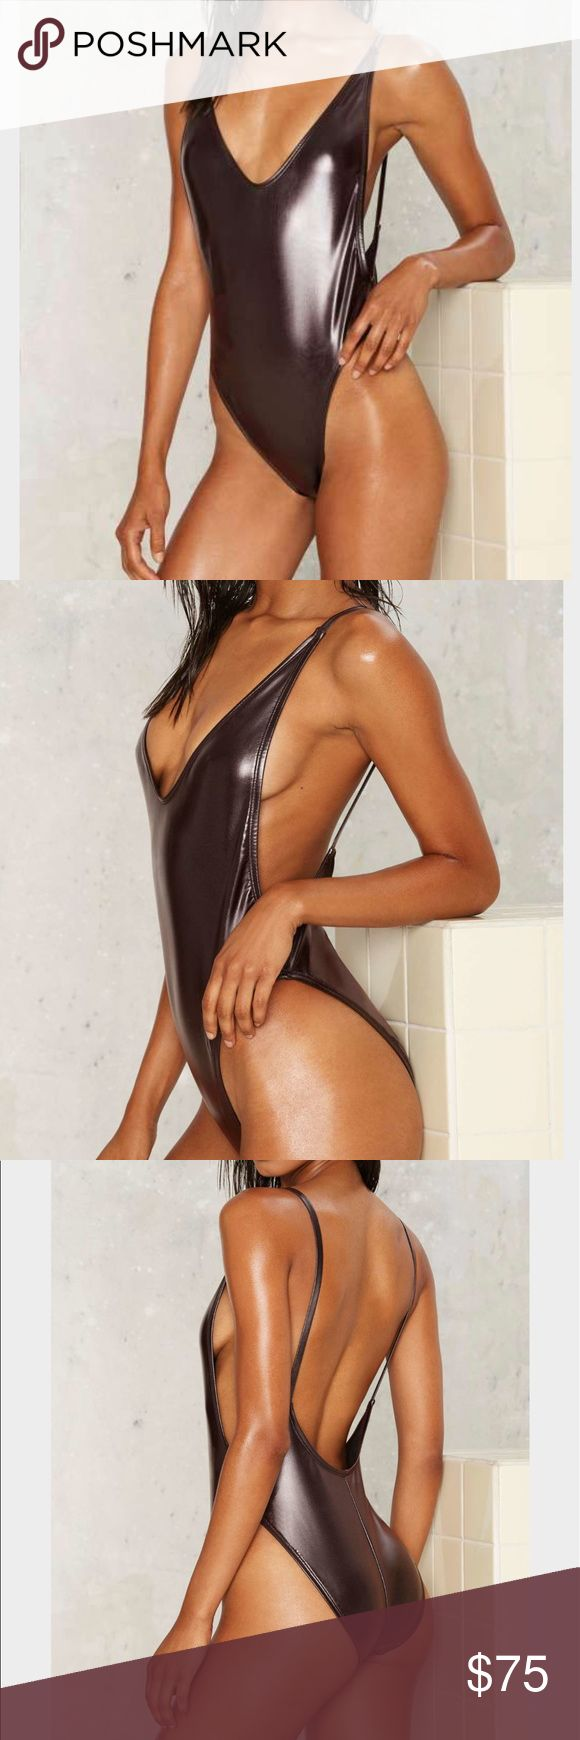 Nasty Gal Wet's The Idea Metallic Swimsuit -Bronze Love a good liquid look. The Wet's the Idea Swimsuit features a bronze liquid metallic body, plunging neckline, scoop back, high and low sides, and a medium coverage bottom. Fully lined. By Nasty Gal. Nasty Gal Swim One Pieces